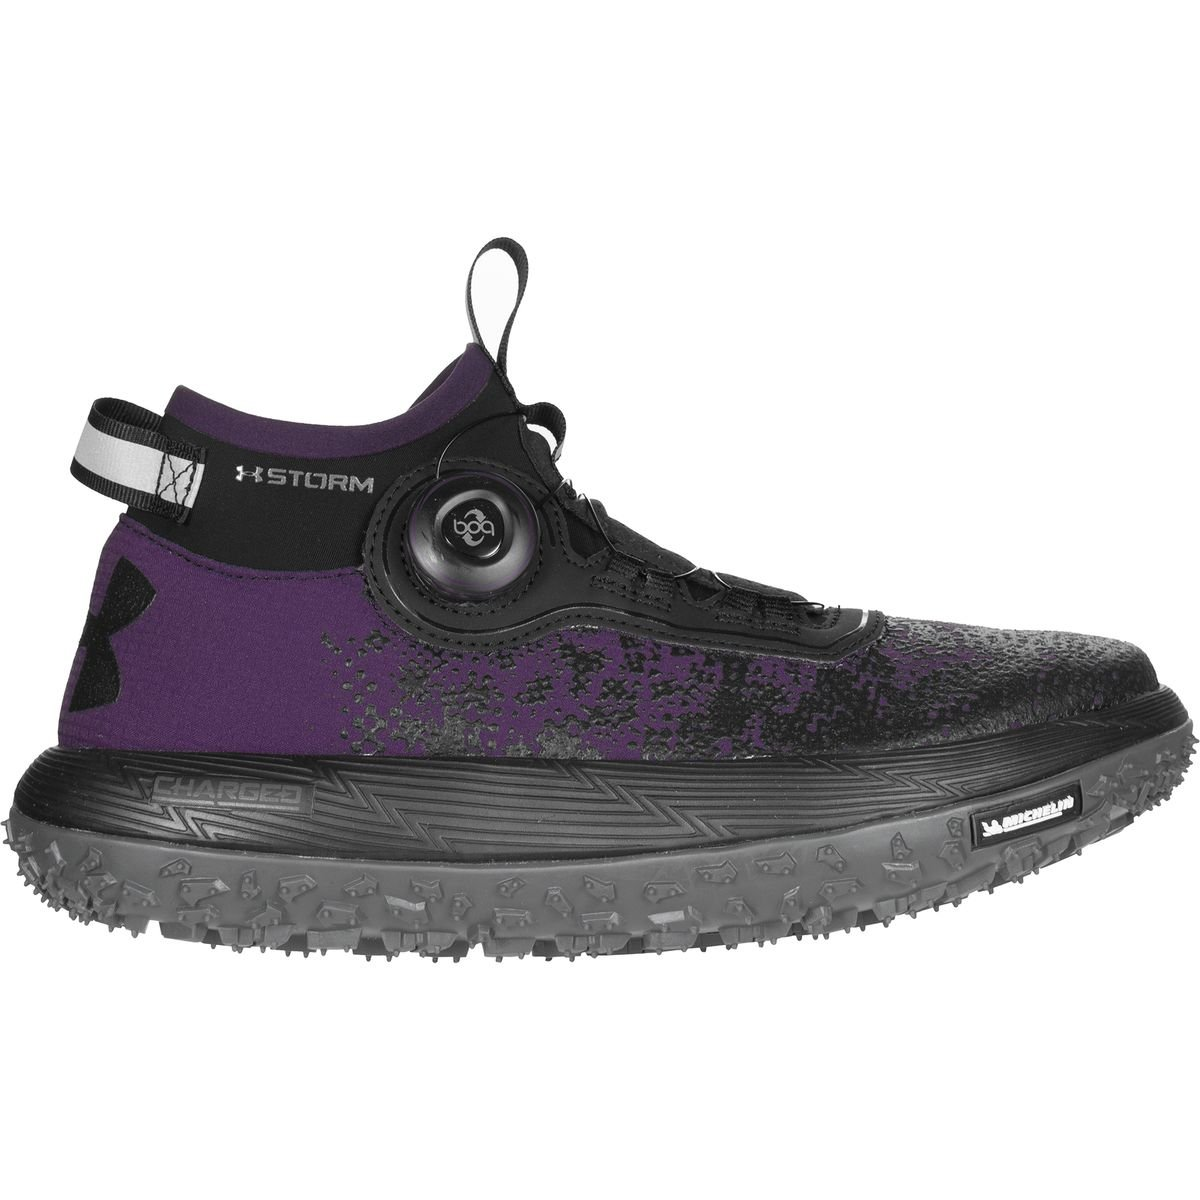 Under Armour Fat Tire 2 Women's Trail Running Shoes - SS17 B01N2SAPNO 8.5 B(M) US|Premier Purple/Rhino Gray/Black